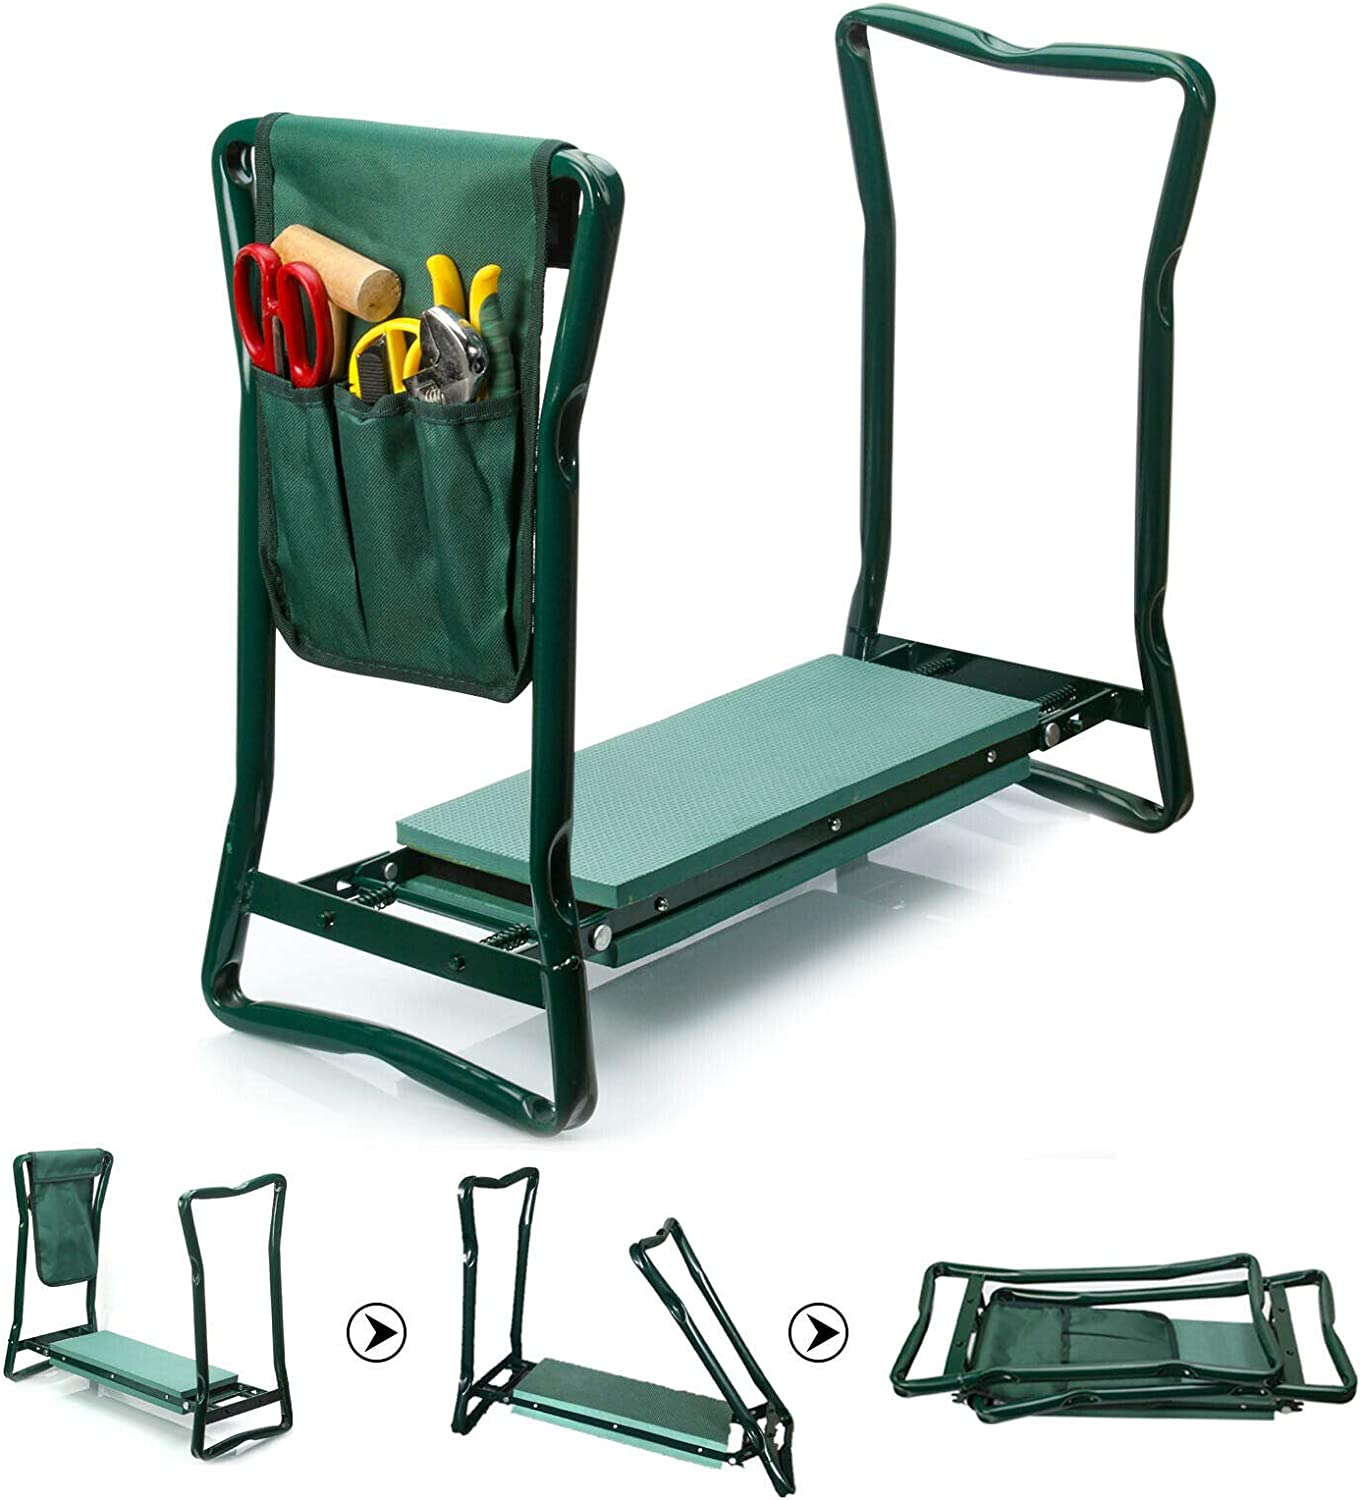 Folding Garden Chair Kneeler Seat Stainless Steel Garden Stool with Kneeling Pad for Gardening Lovers, Sturdy and Lightweight